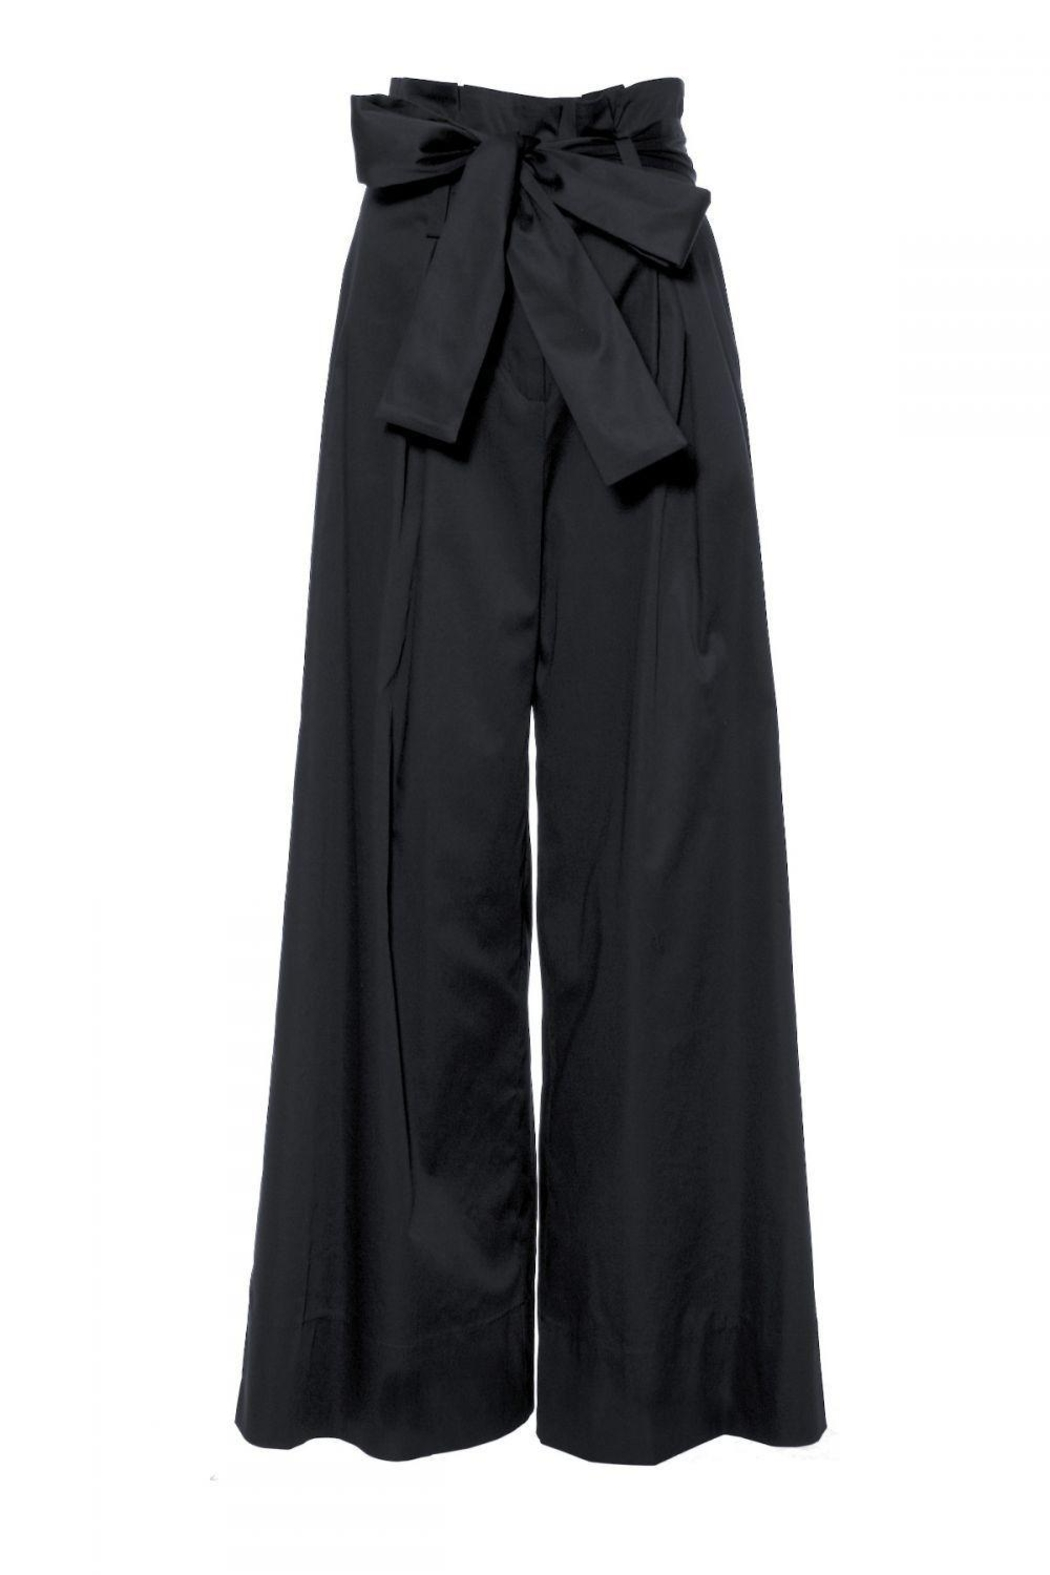 AGGI Pants Andie Super Black - Front Full Image